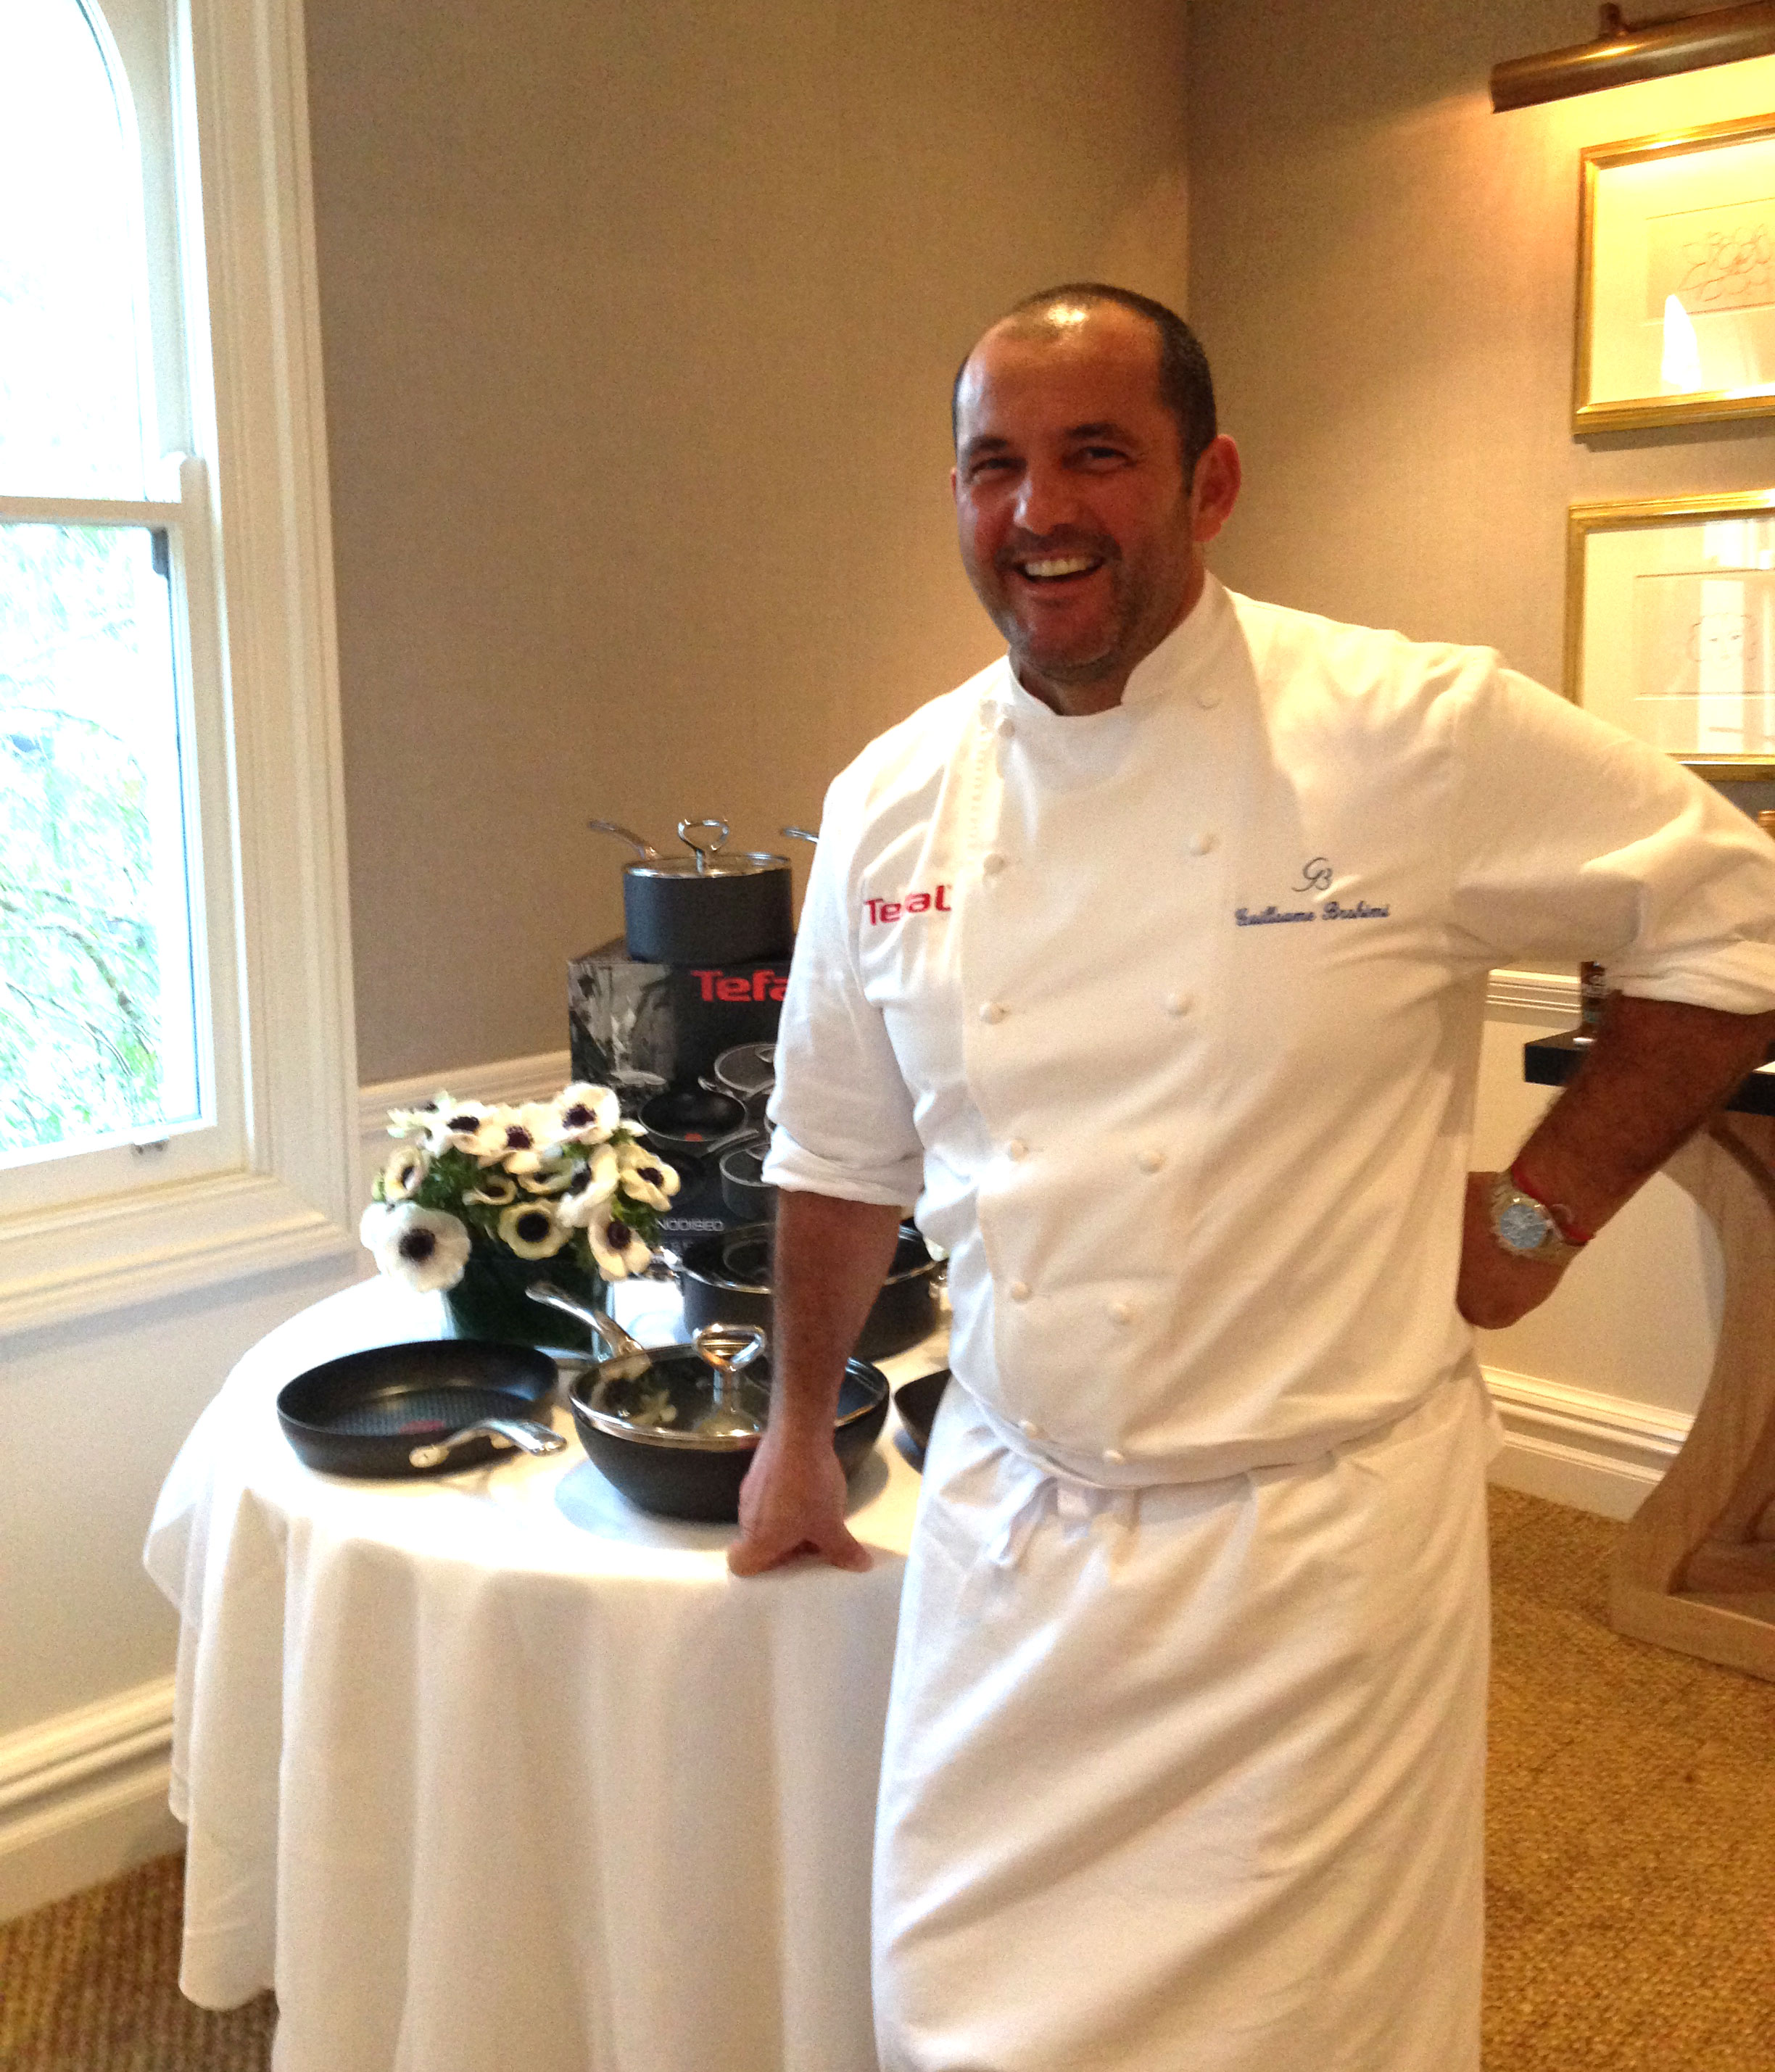 Guillaume Brahimi with Tefal's new range